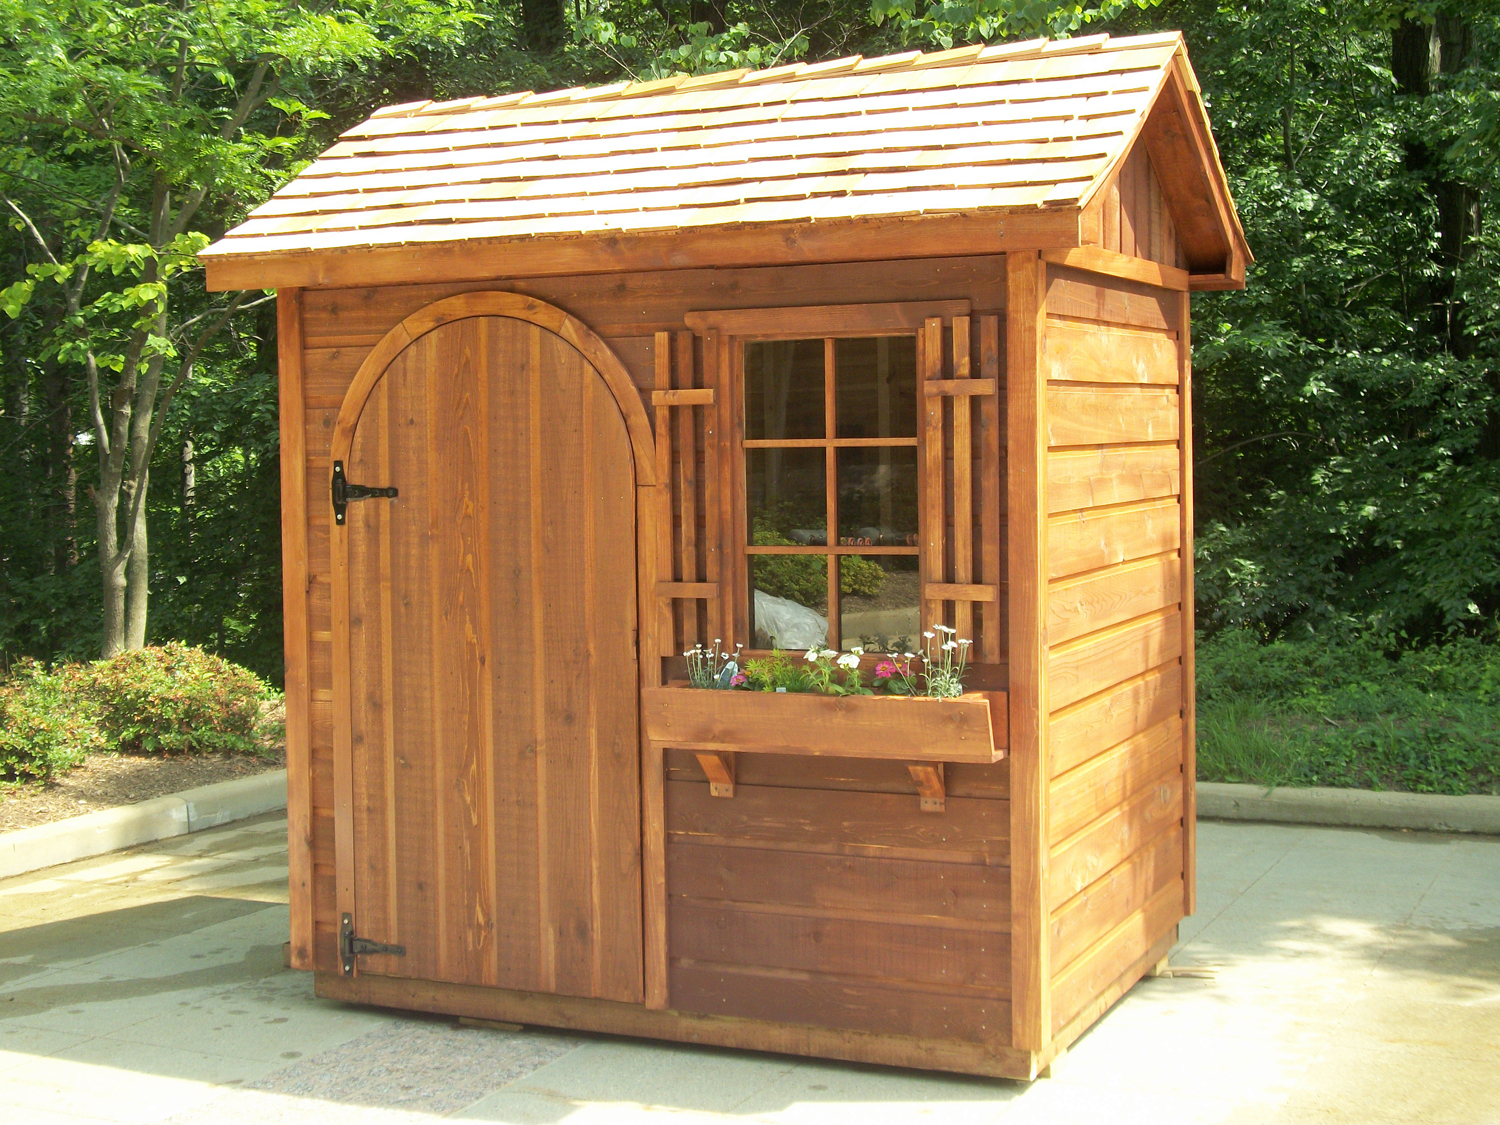 Garden Sheds Blueprints garden shed design and plans | shed blueprints